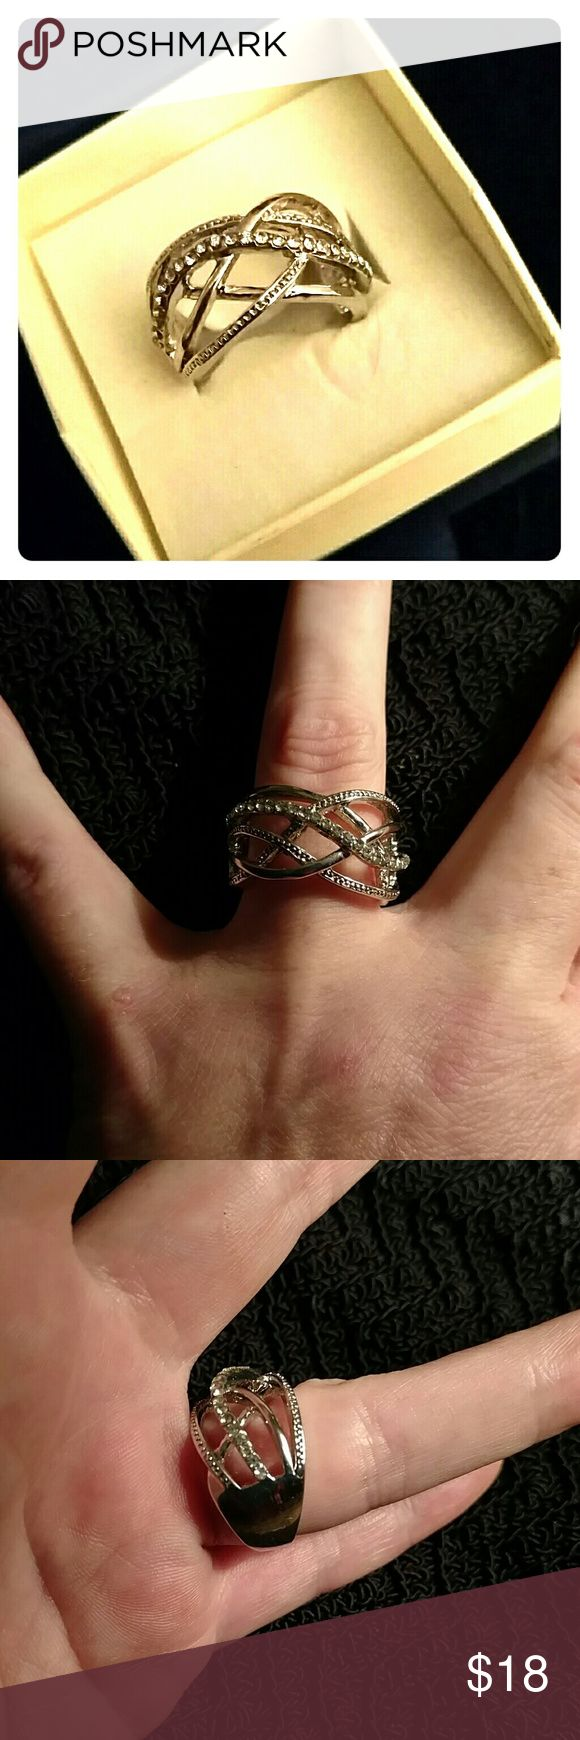 SILVER MULTI LAYER INTERWOVEN RING Design as Shown 5 Layers of mixes ... Smooth & Stones intertwined Excellent Condition One tiny stone looks missing but is not :) Jewelry Rings